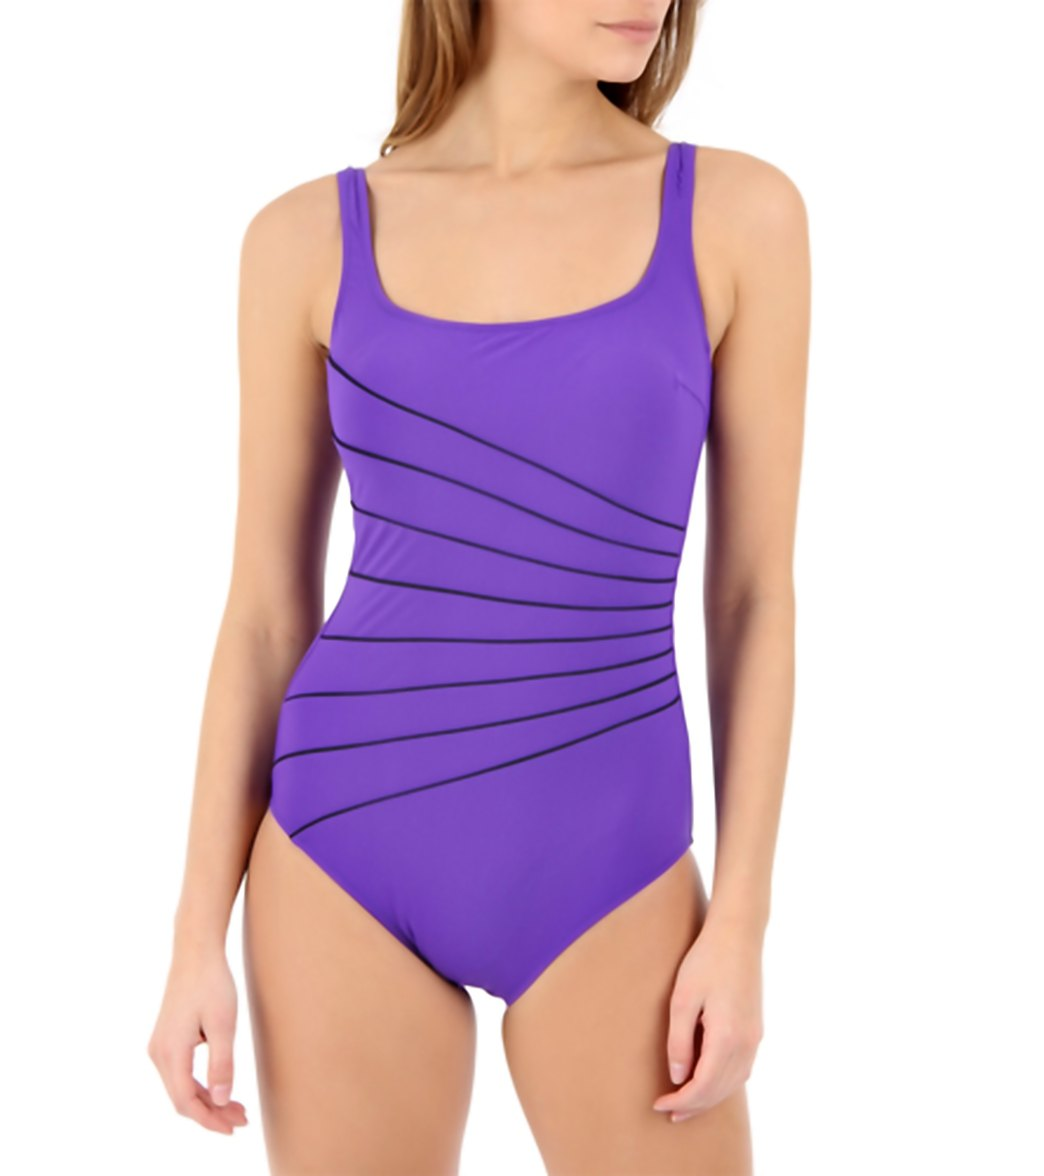 923f9551869ca Gottex Ray of Light Square Neck One Piece Swimsuit at SwimOutlet ...